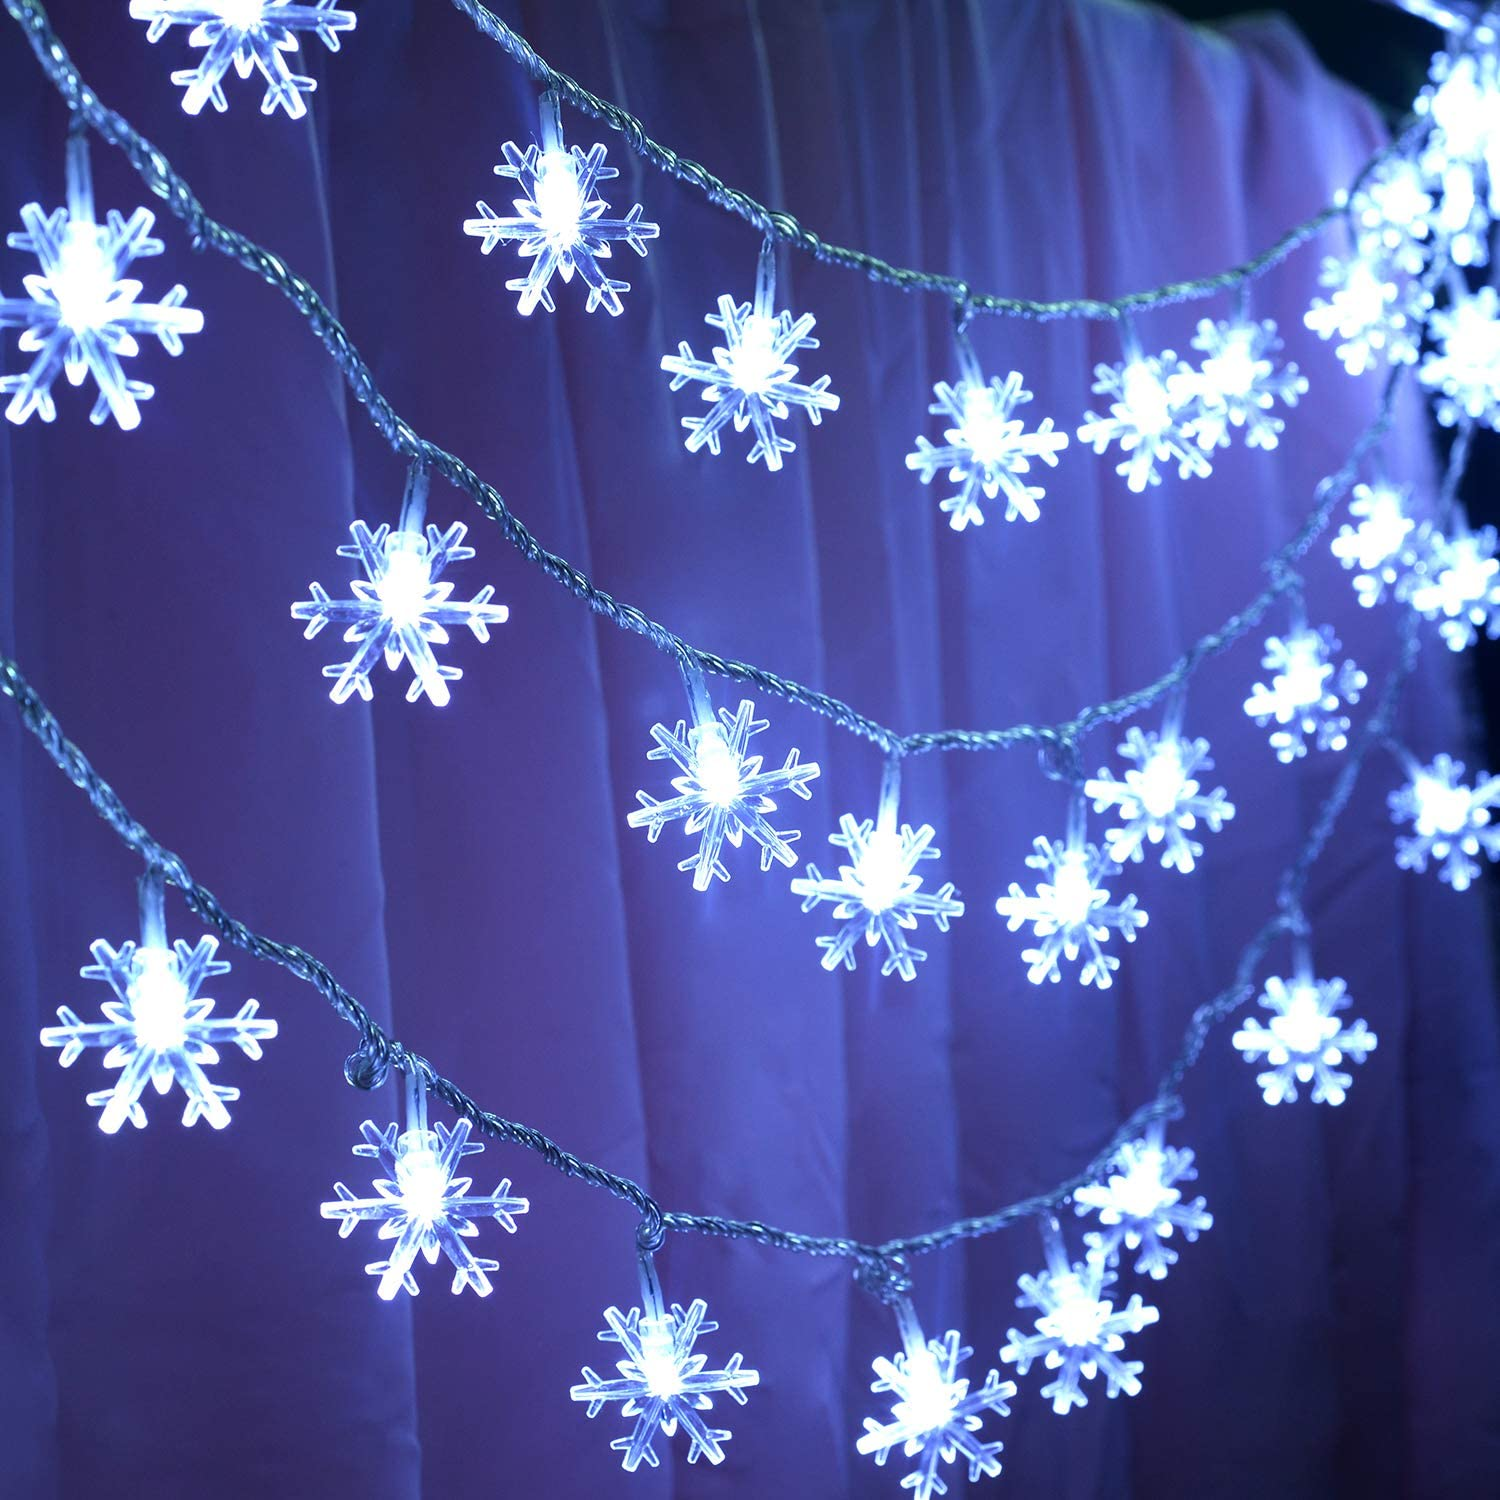 32FT 80LED Christmas String Lights Christmas Snowflake Lights Holiday Decoration Indoor Outdoor Christmas Decoration Christmas Ornament